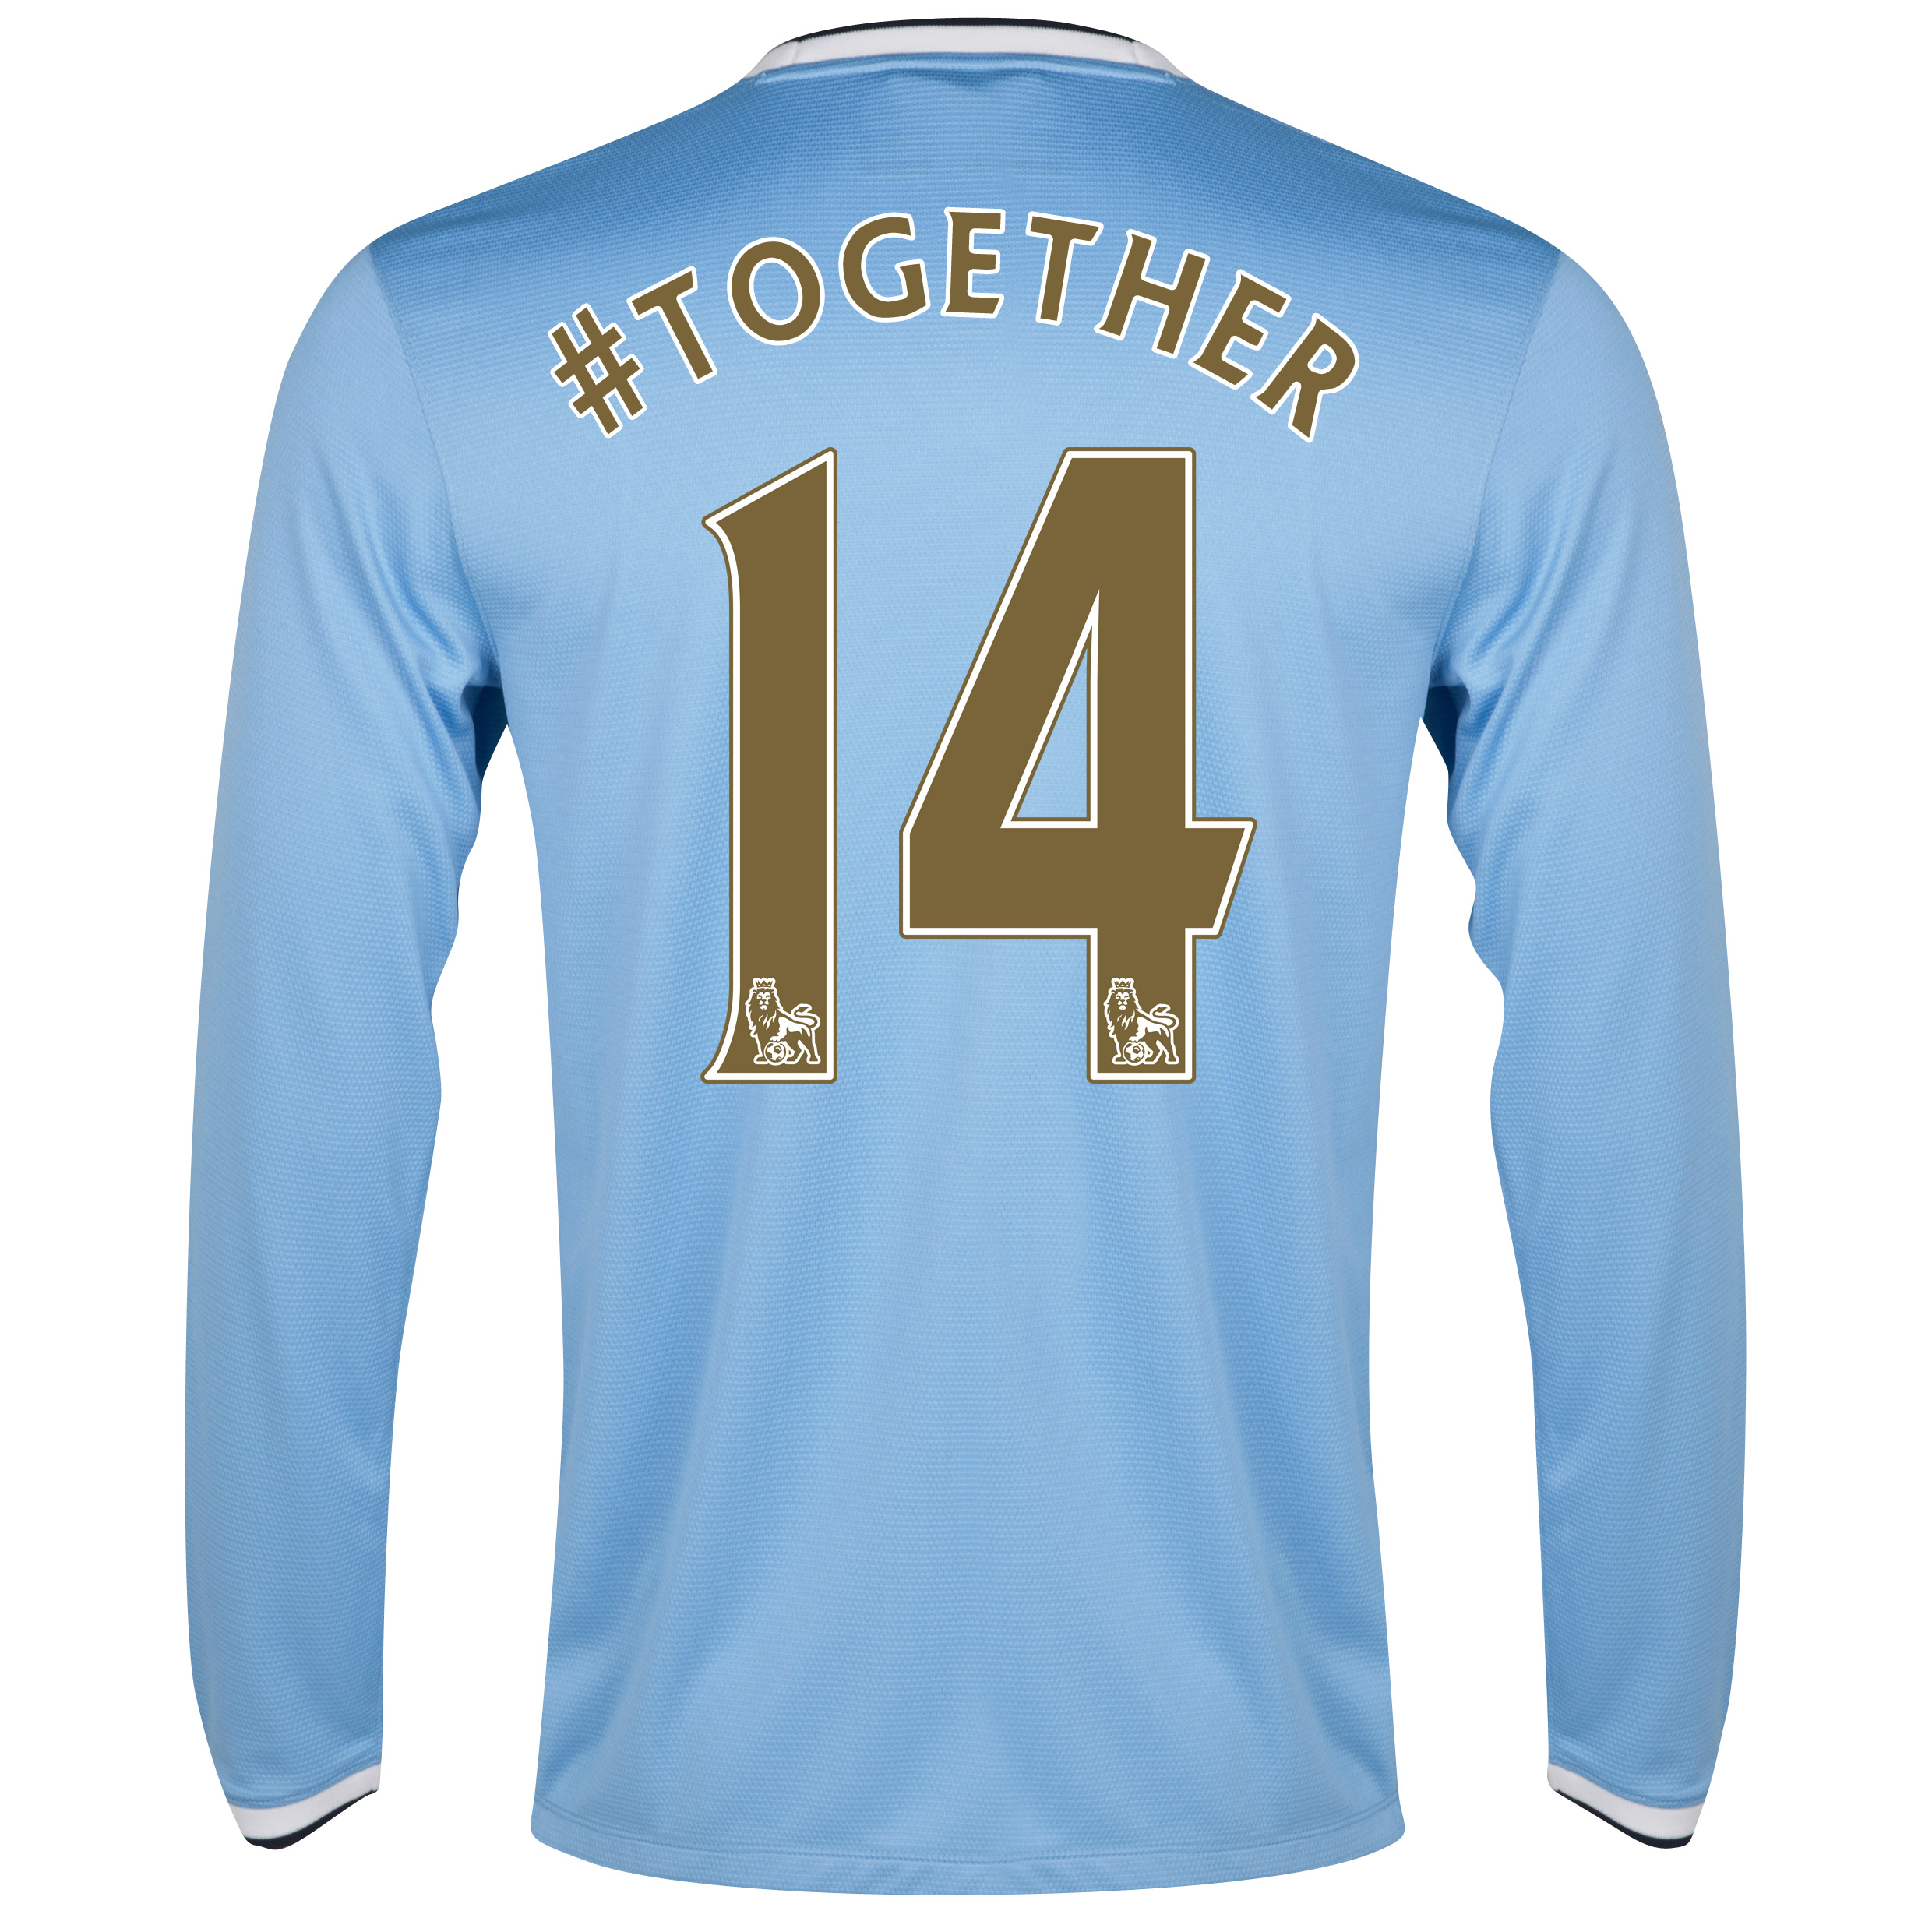 Manchester City Home Shirt 2013/14 - Long Sleeved with #together 14 printing